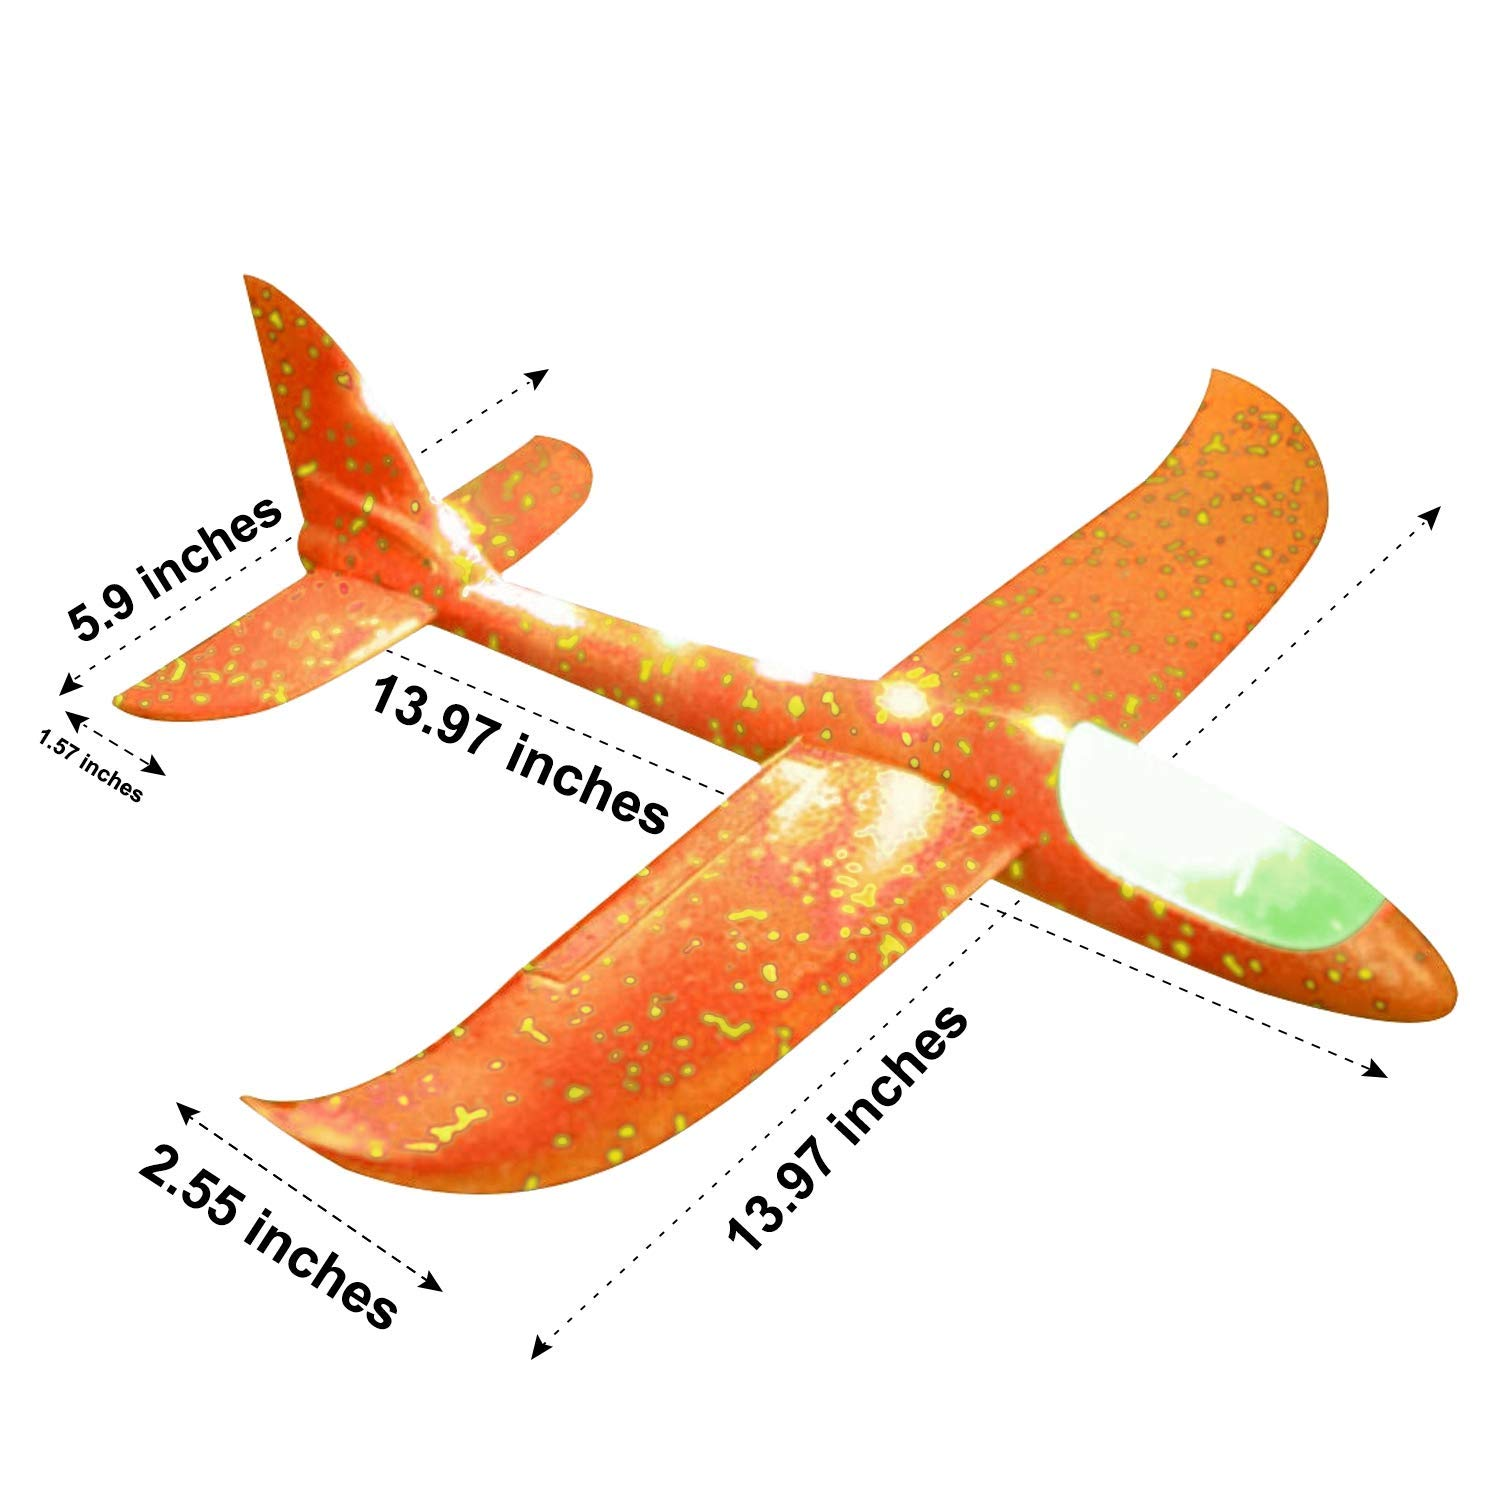 Airplane Toys Throwing Foam Plane, 13.5'' Inch LED Light Up Glider Airplane Model Toy with Dual Flight Mode Challenging Outdoor Plane Jet Sports Game Flying Toys Gift for Kids Toddlers Teens (2 Pack) by AMENON (Image #3)